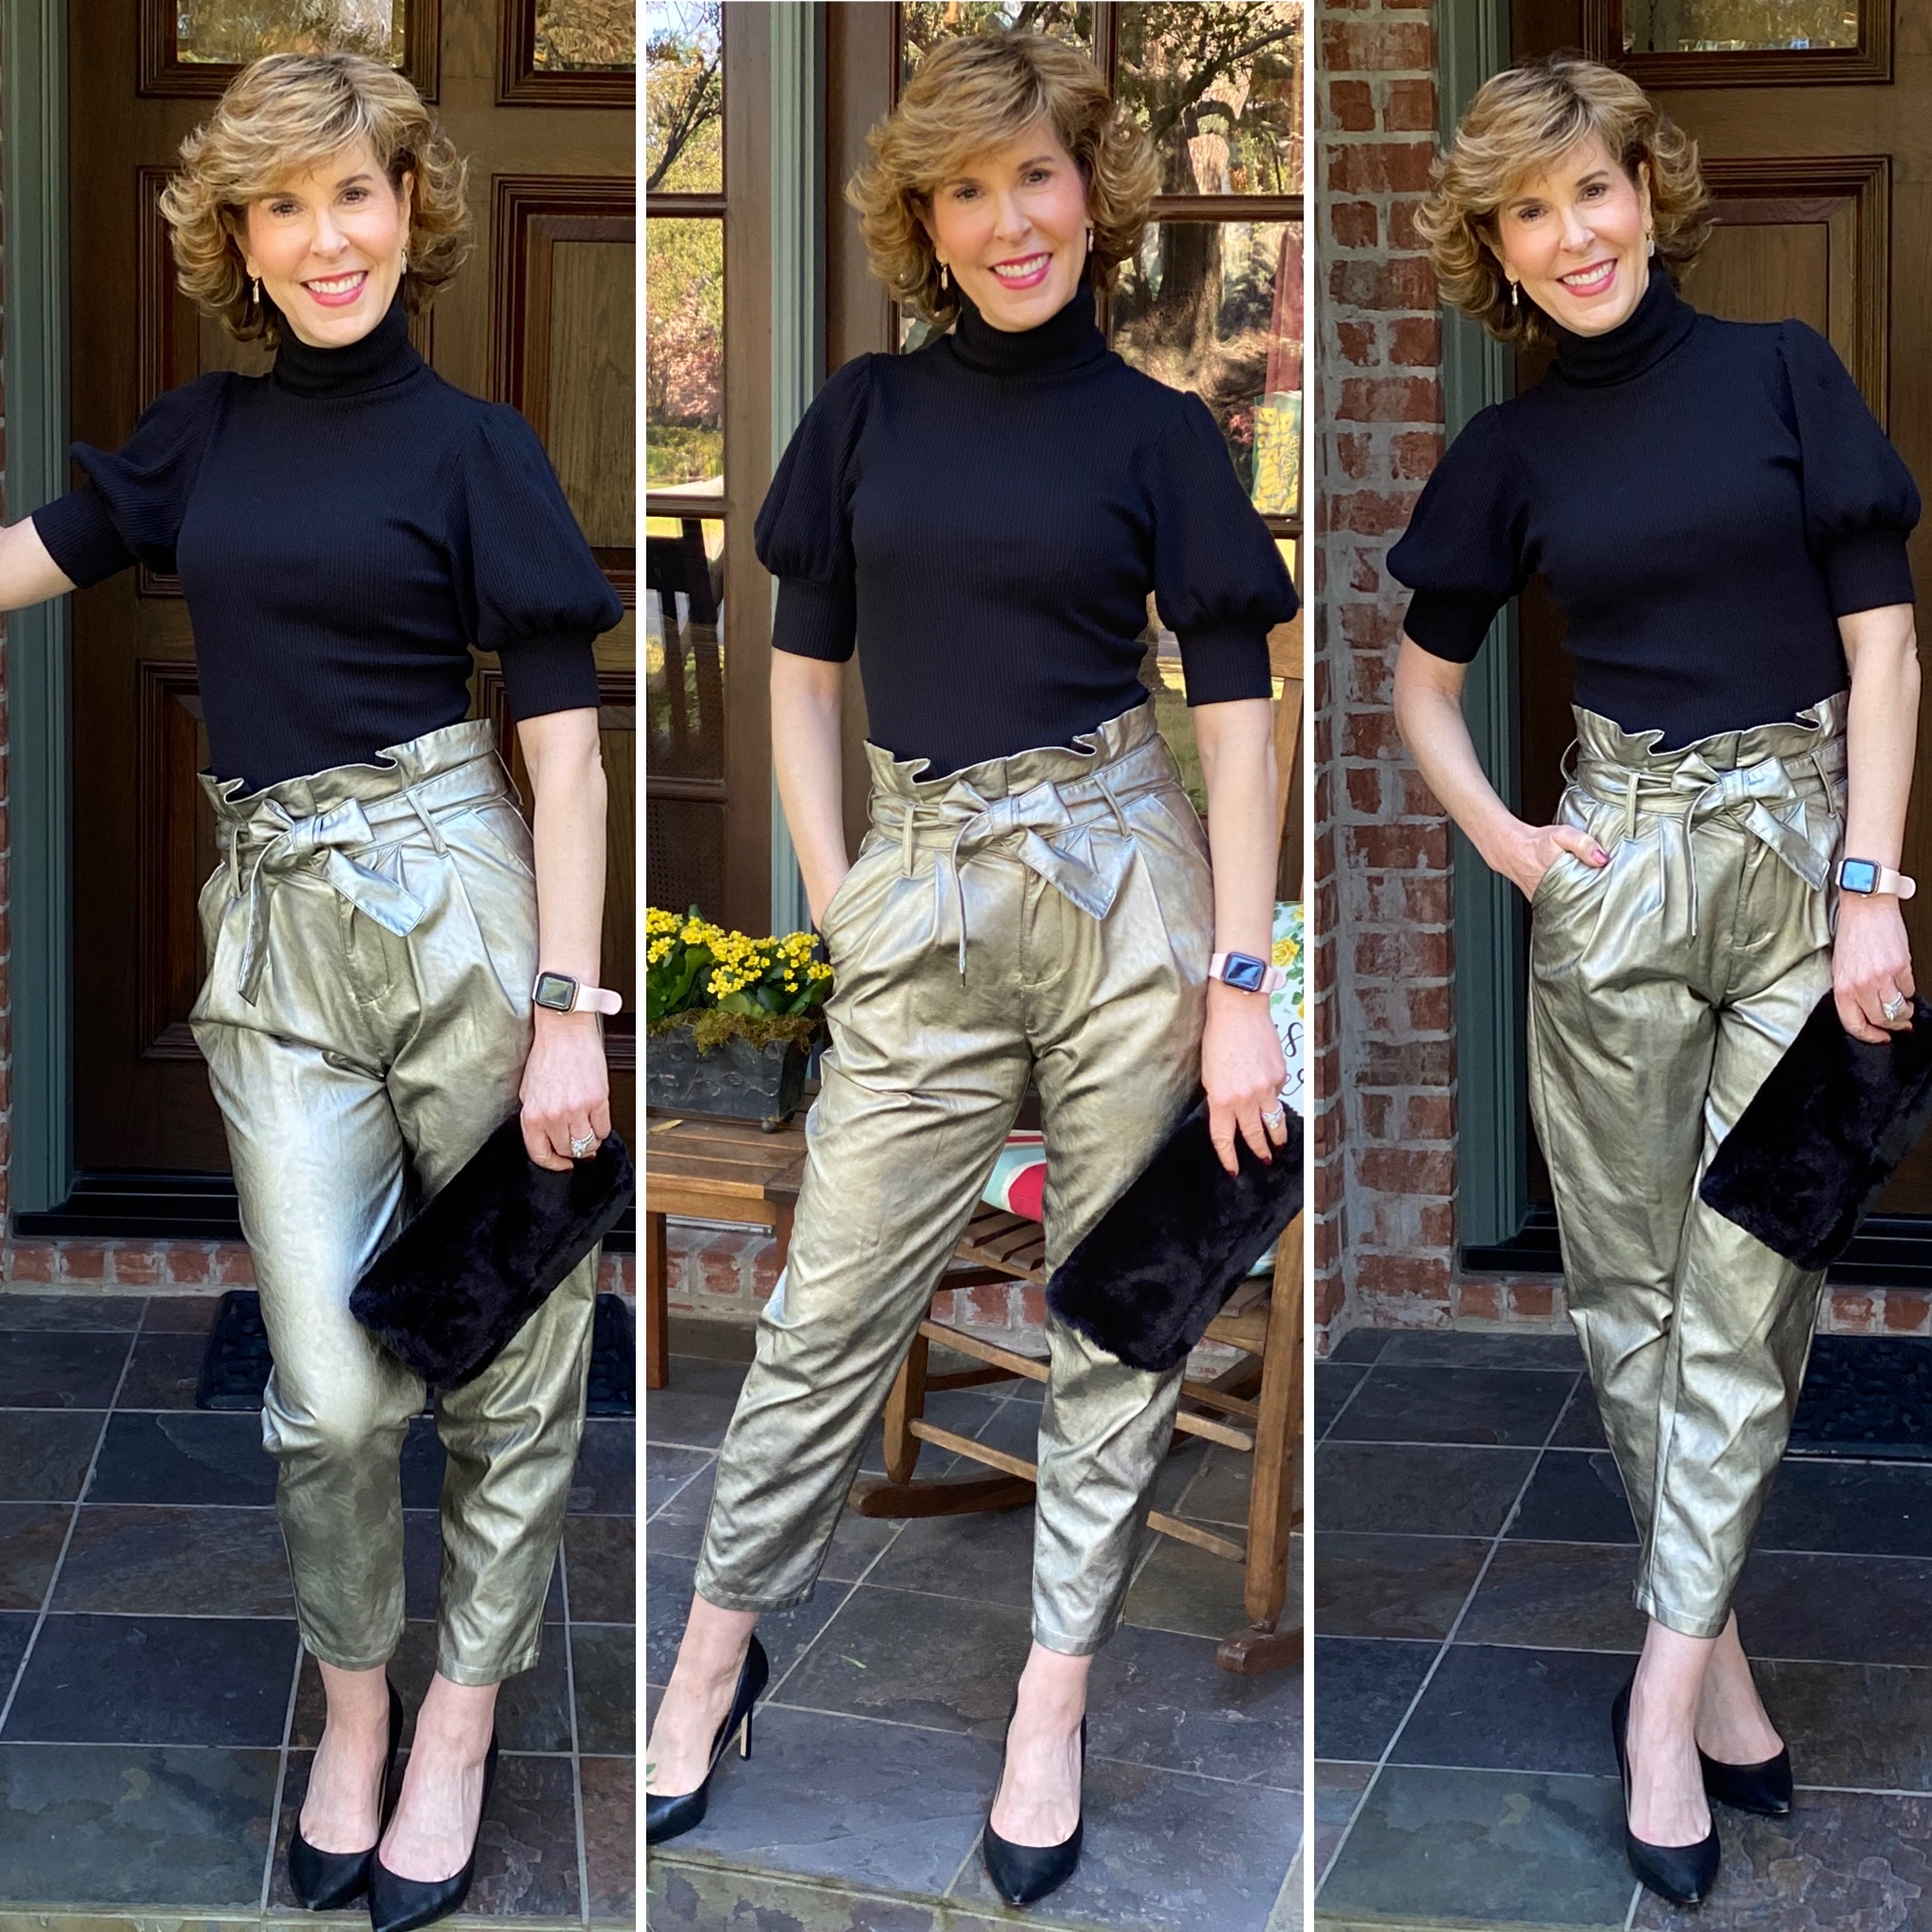 3 photo collage of woman wearing short sleeve black turtleneck and metallic pants in front of a door